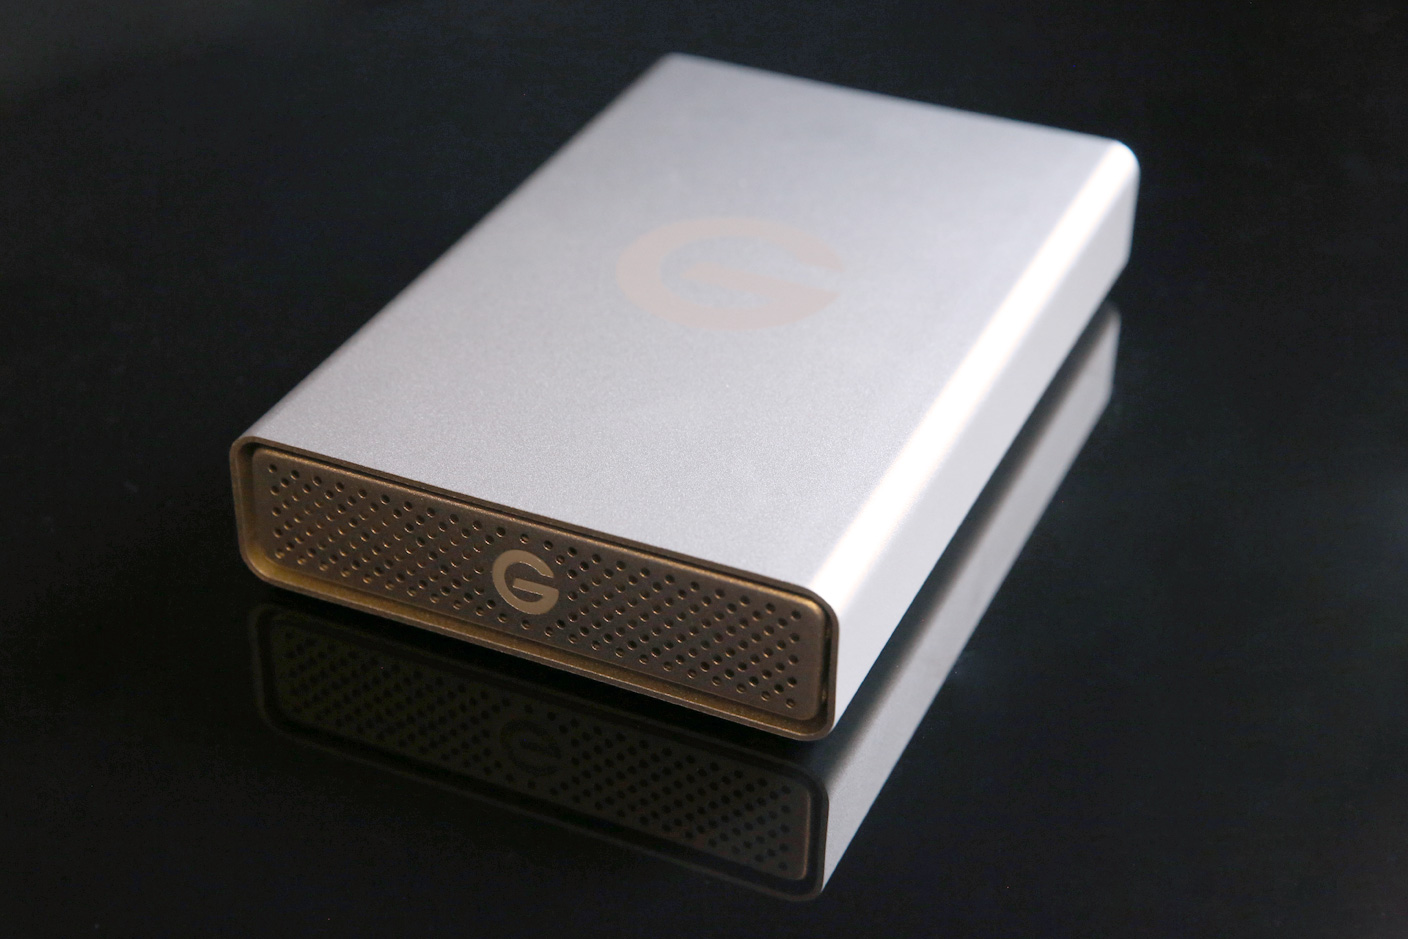 How To Choose The Best External Hard Drive For Your Mac Or Ios Device 9to5mac